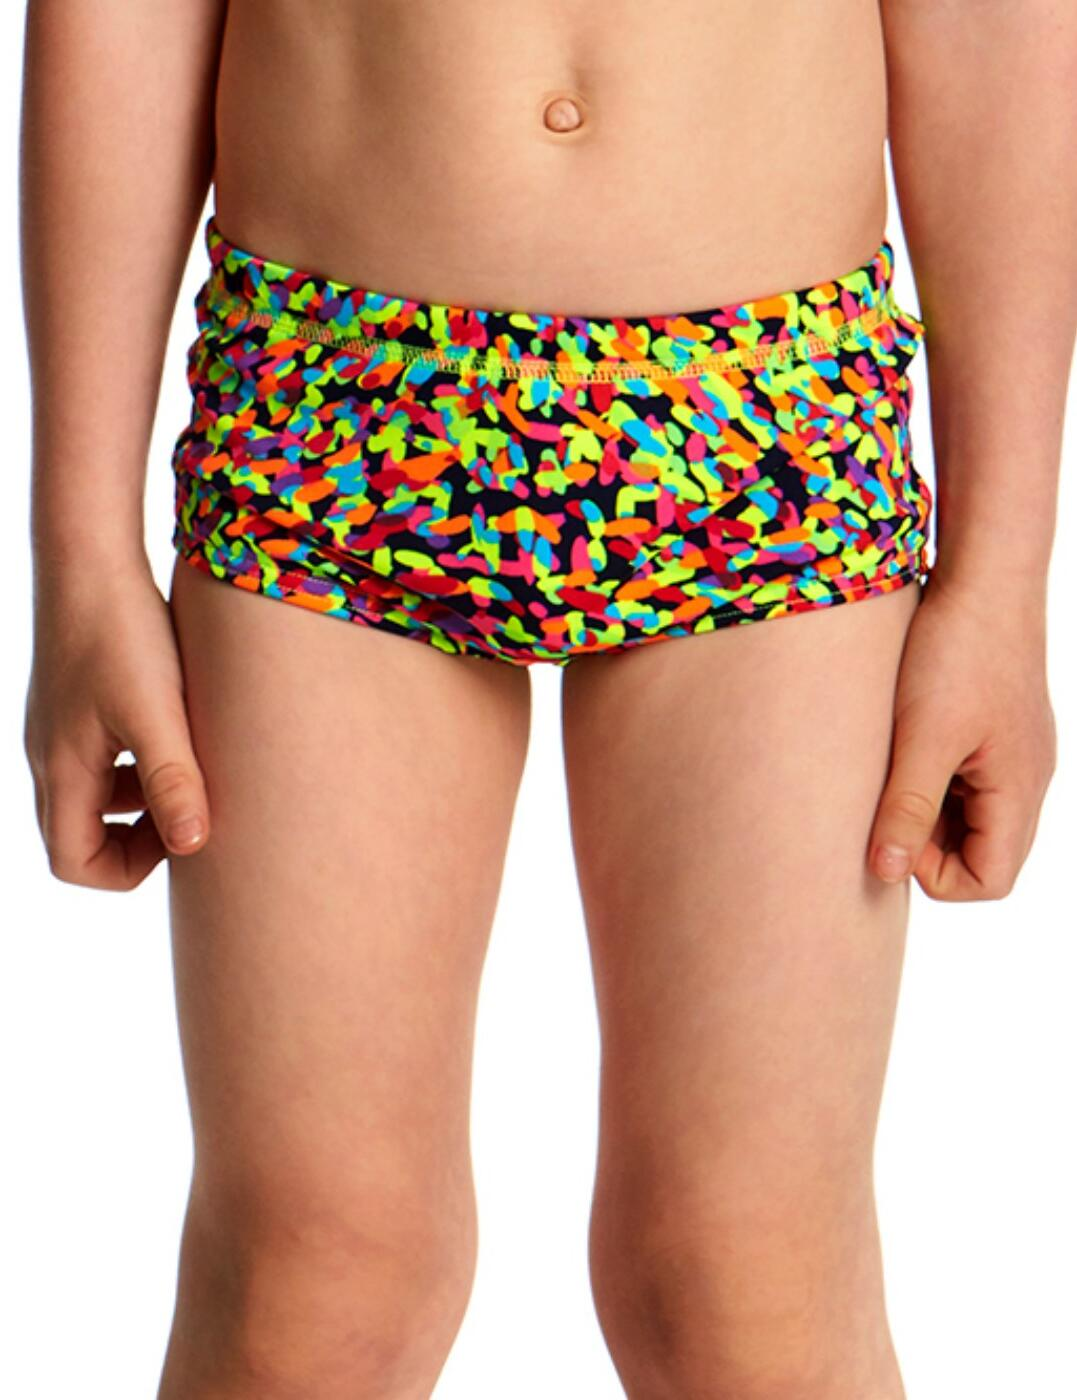 FT32T Funky Trunks Toddler Boys Printed Swim Trunks - FT32T01977 Fireworks